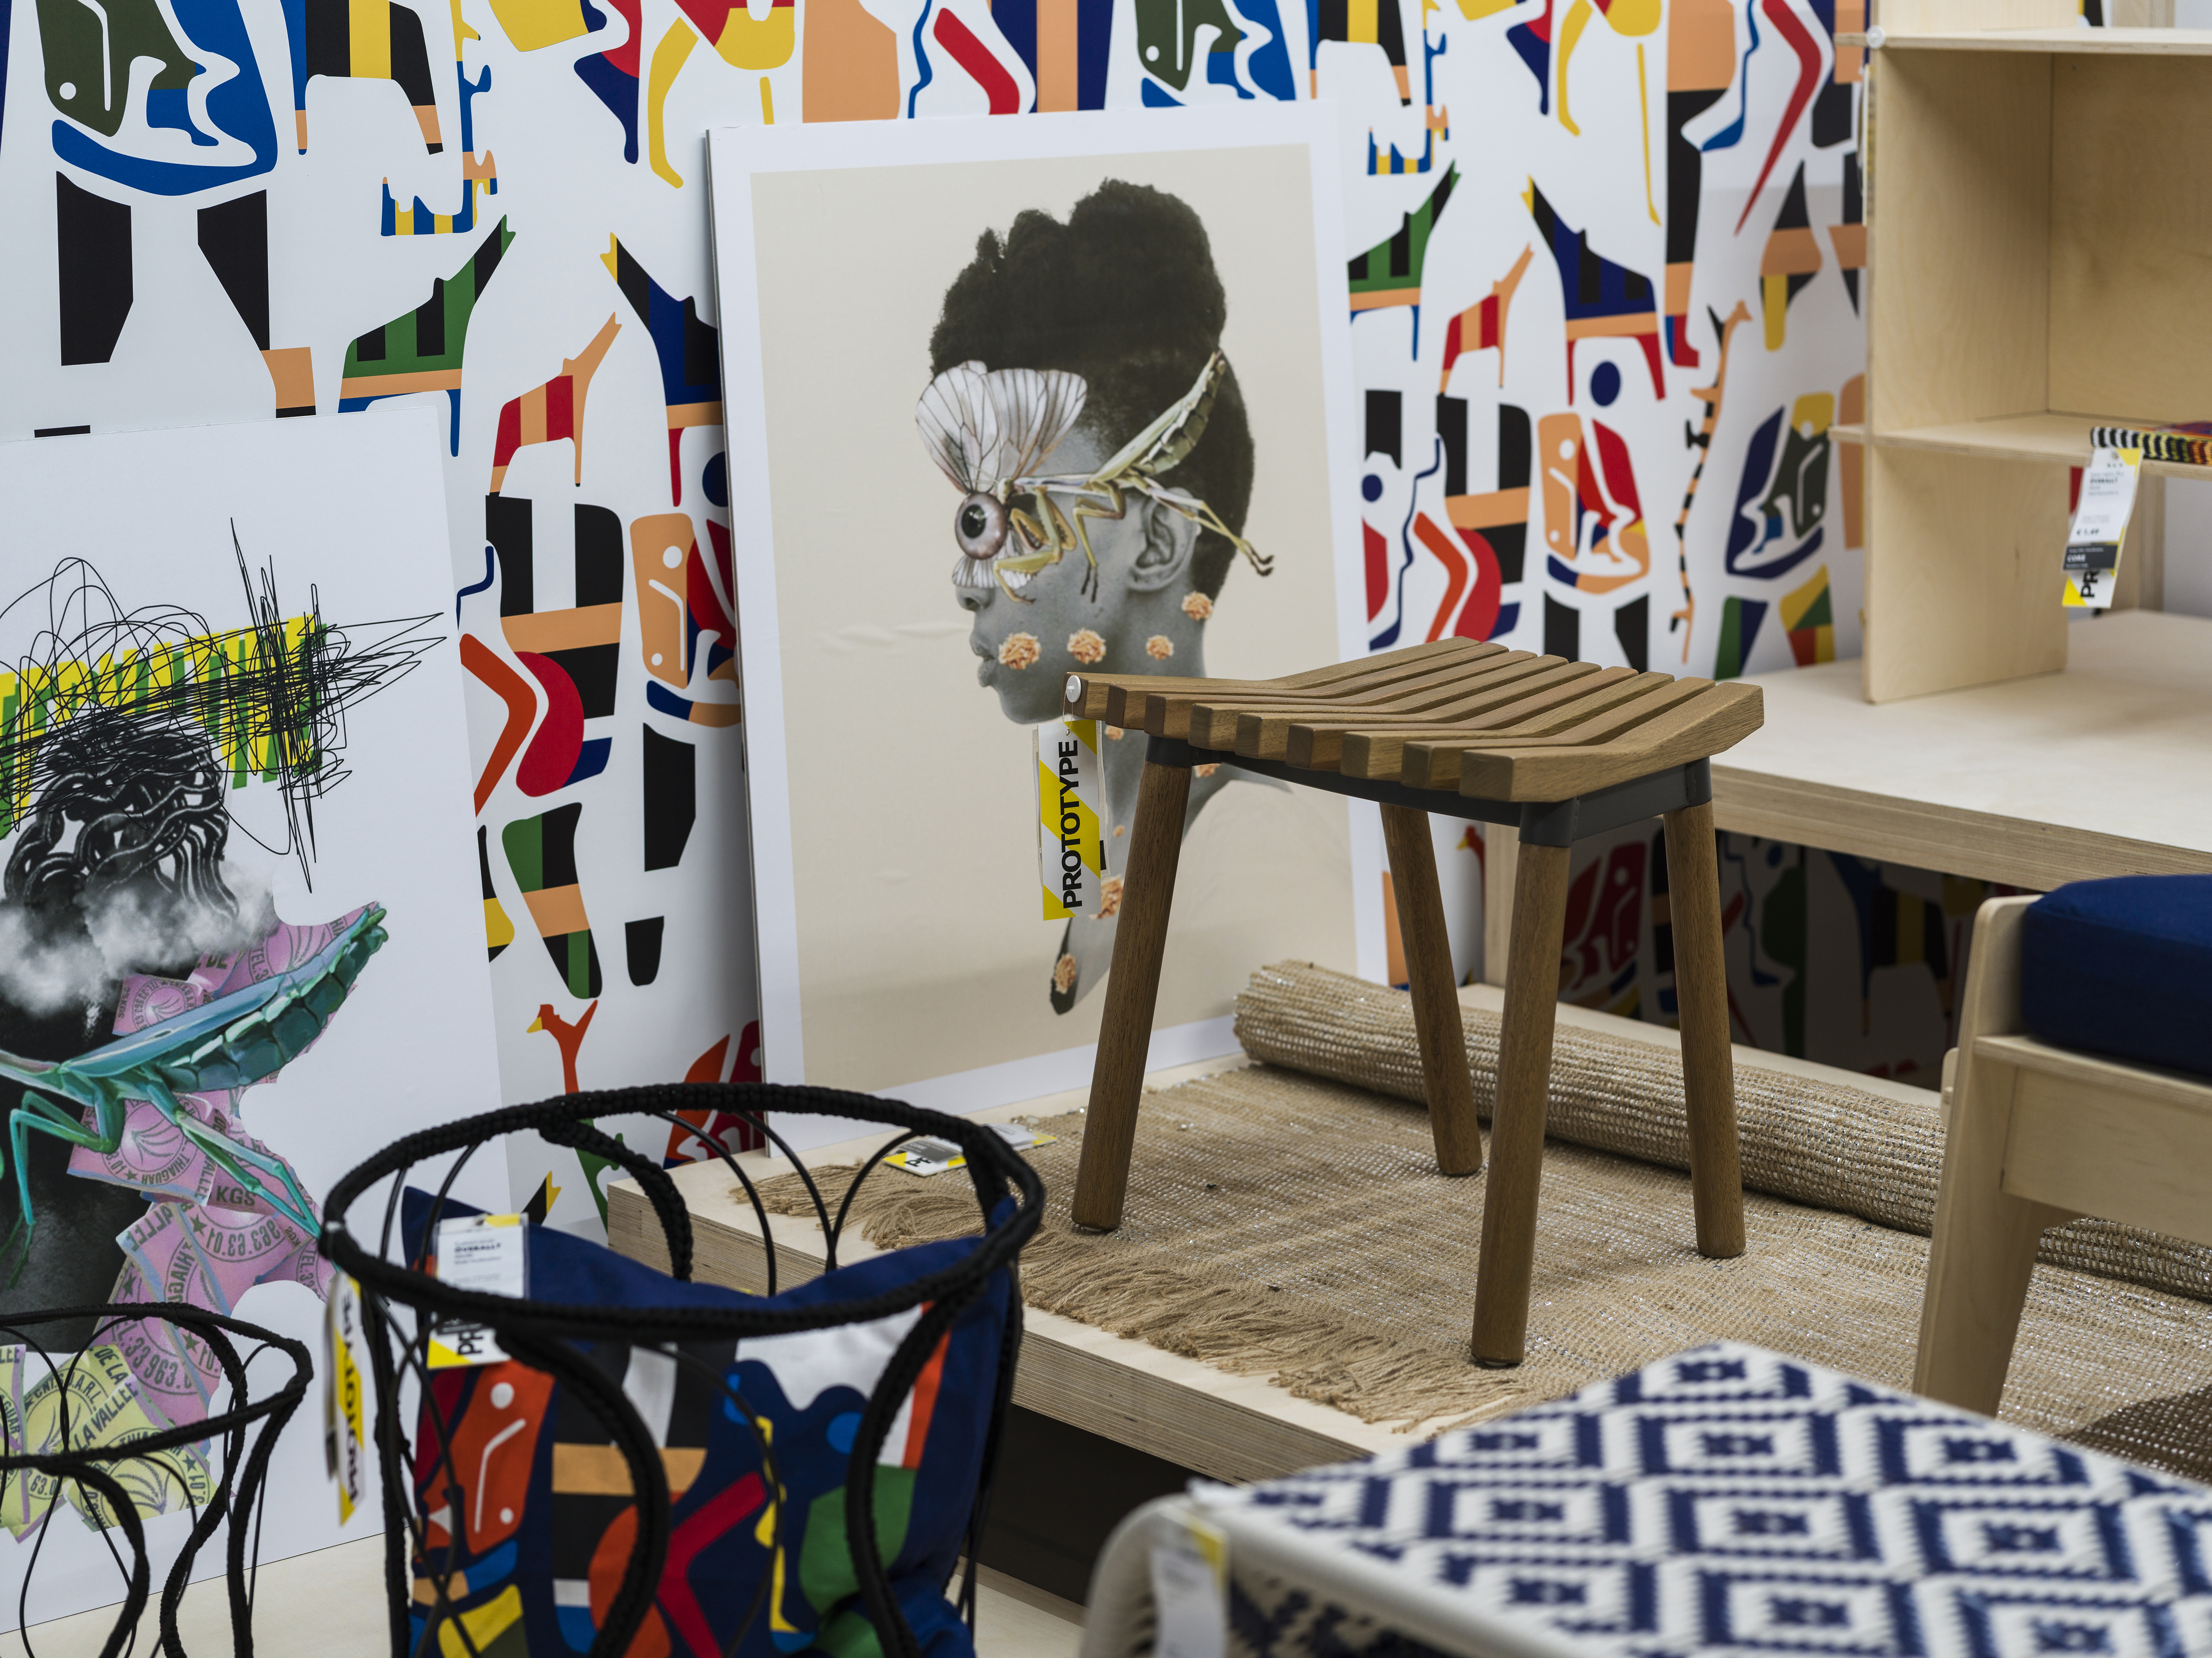 Promotional image for Ikea' s Överallt range, created in collaboration with African designers.